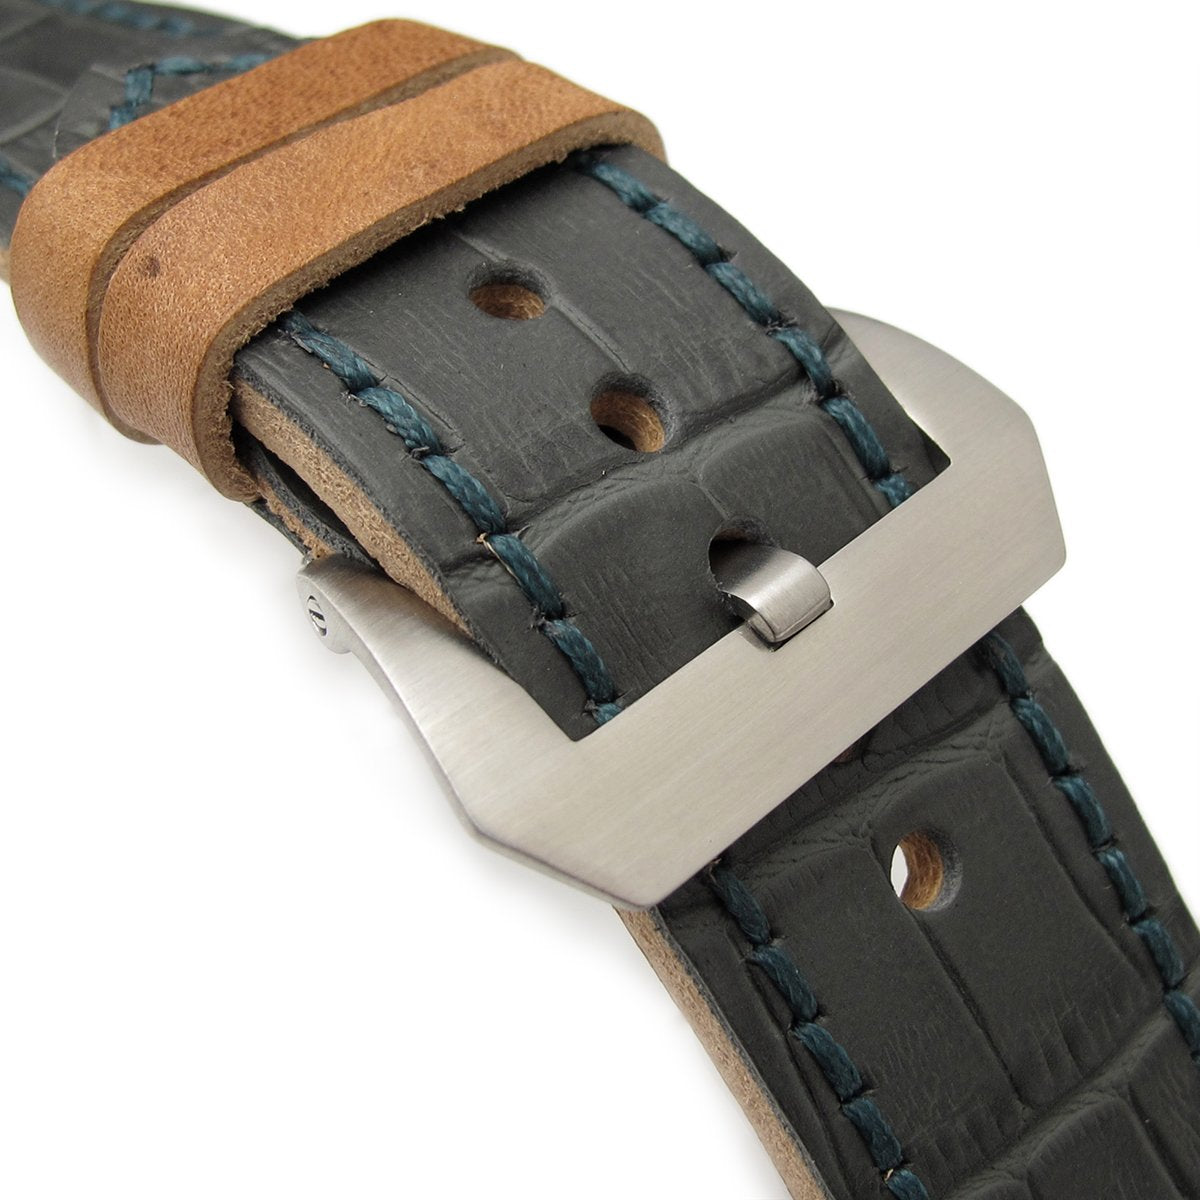 26mm MiLTAT Antipode Watch Strap Dark Grey CrocoCalf in Lake Blue Hand Stitches Strapcode Watch Bands